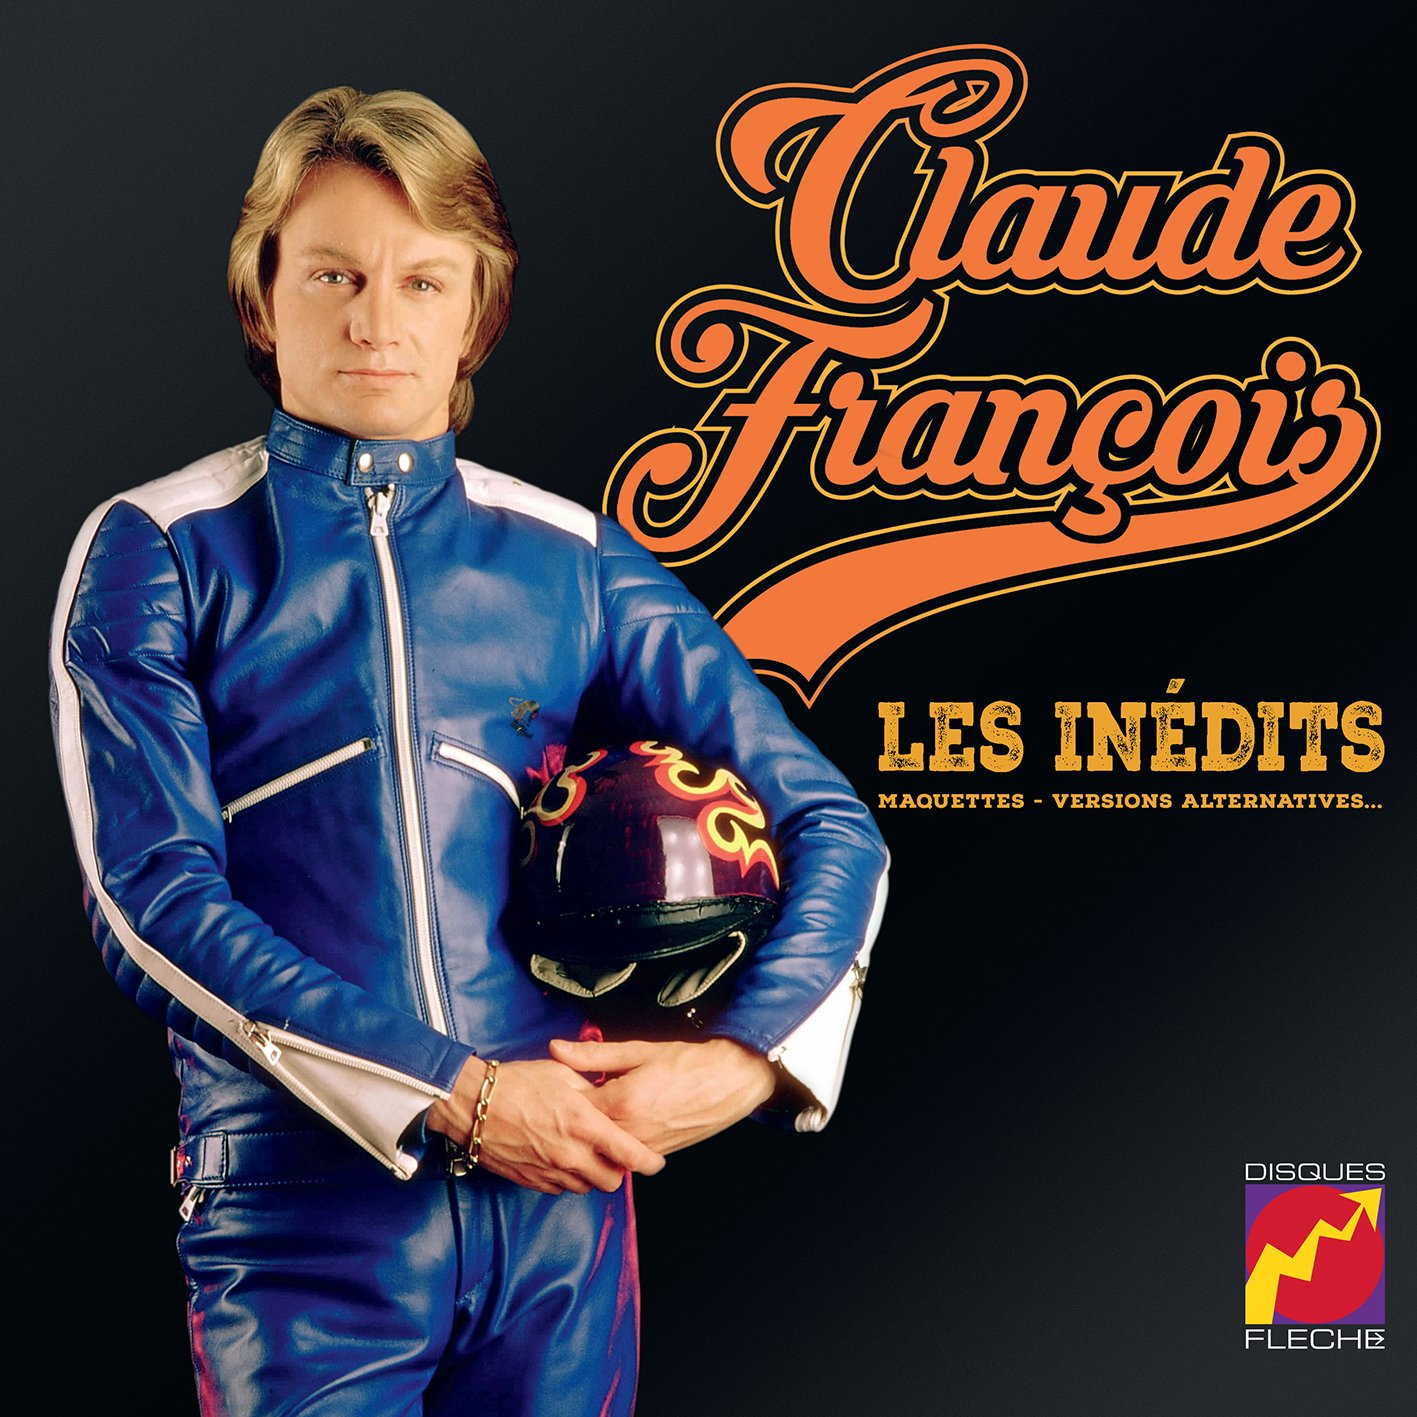 Claude François Les Inédits (Maquettes, Versions Alternatives)